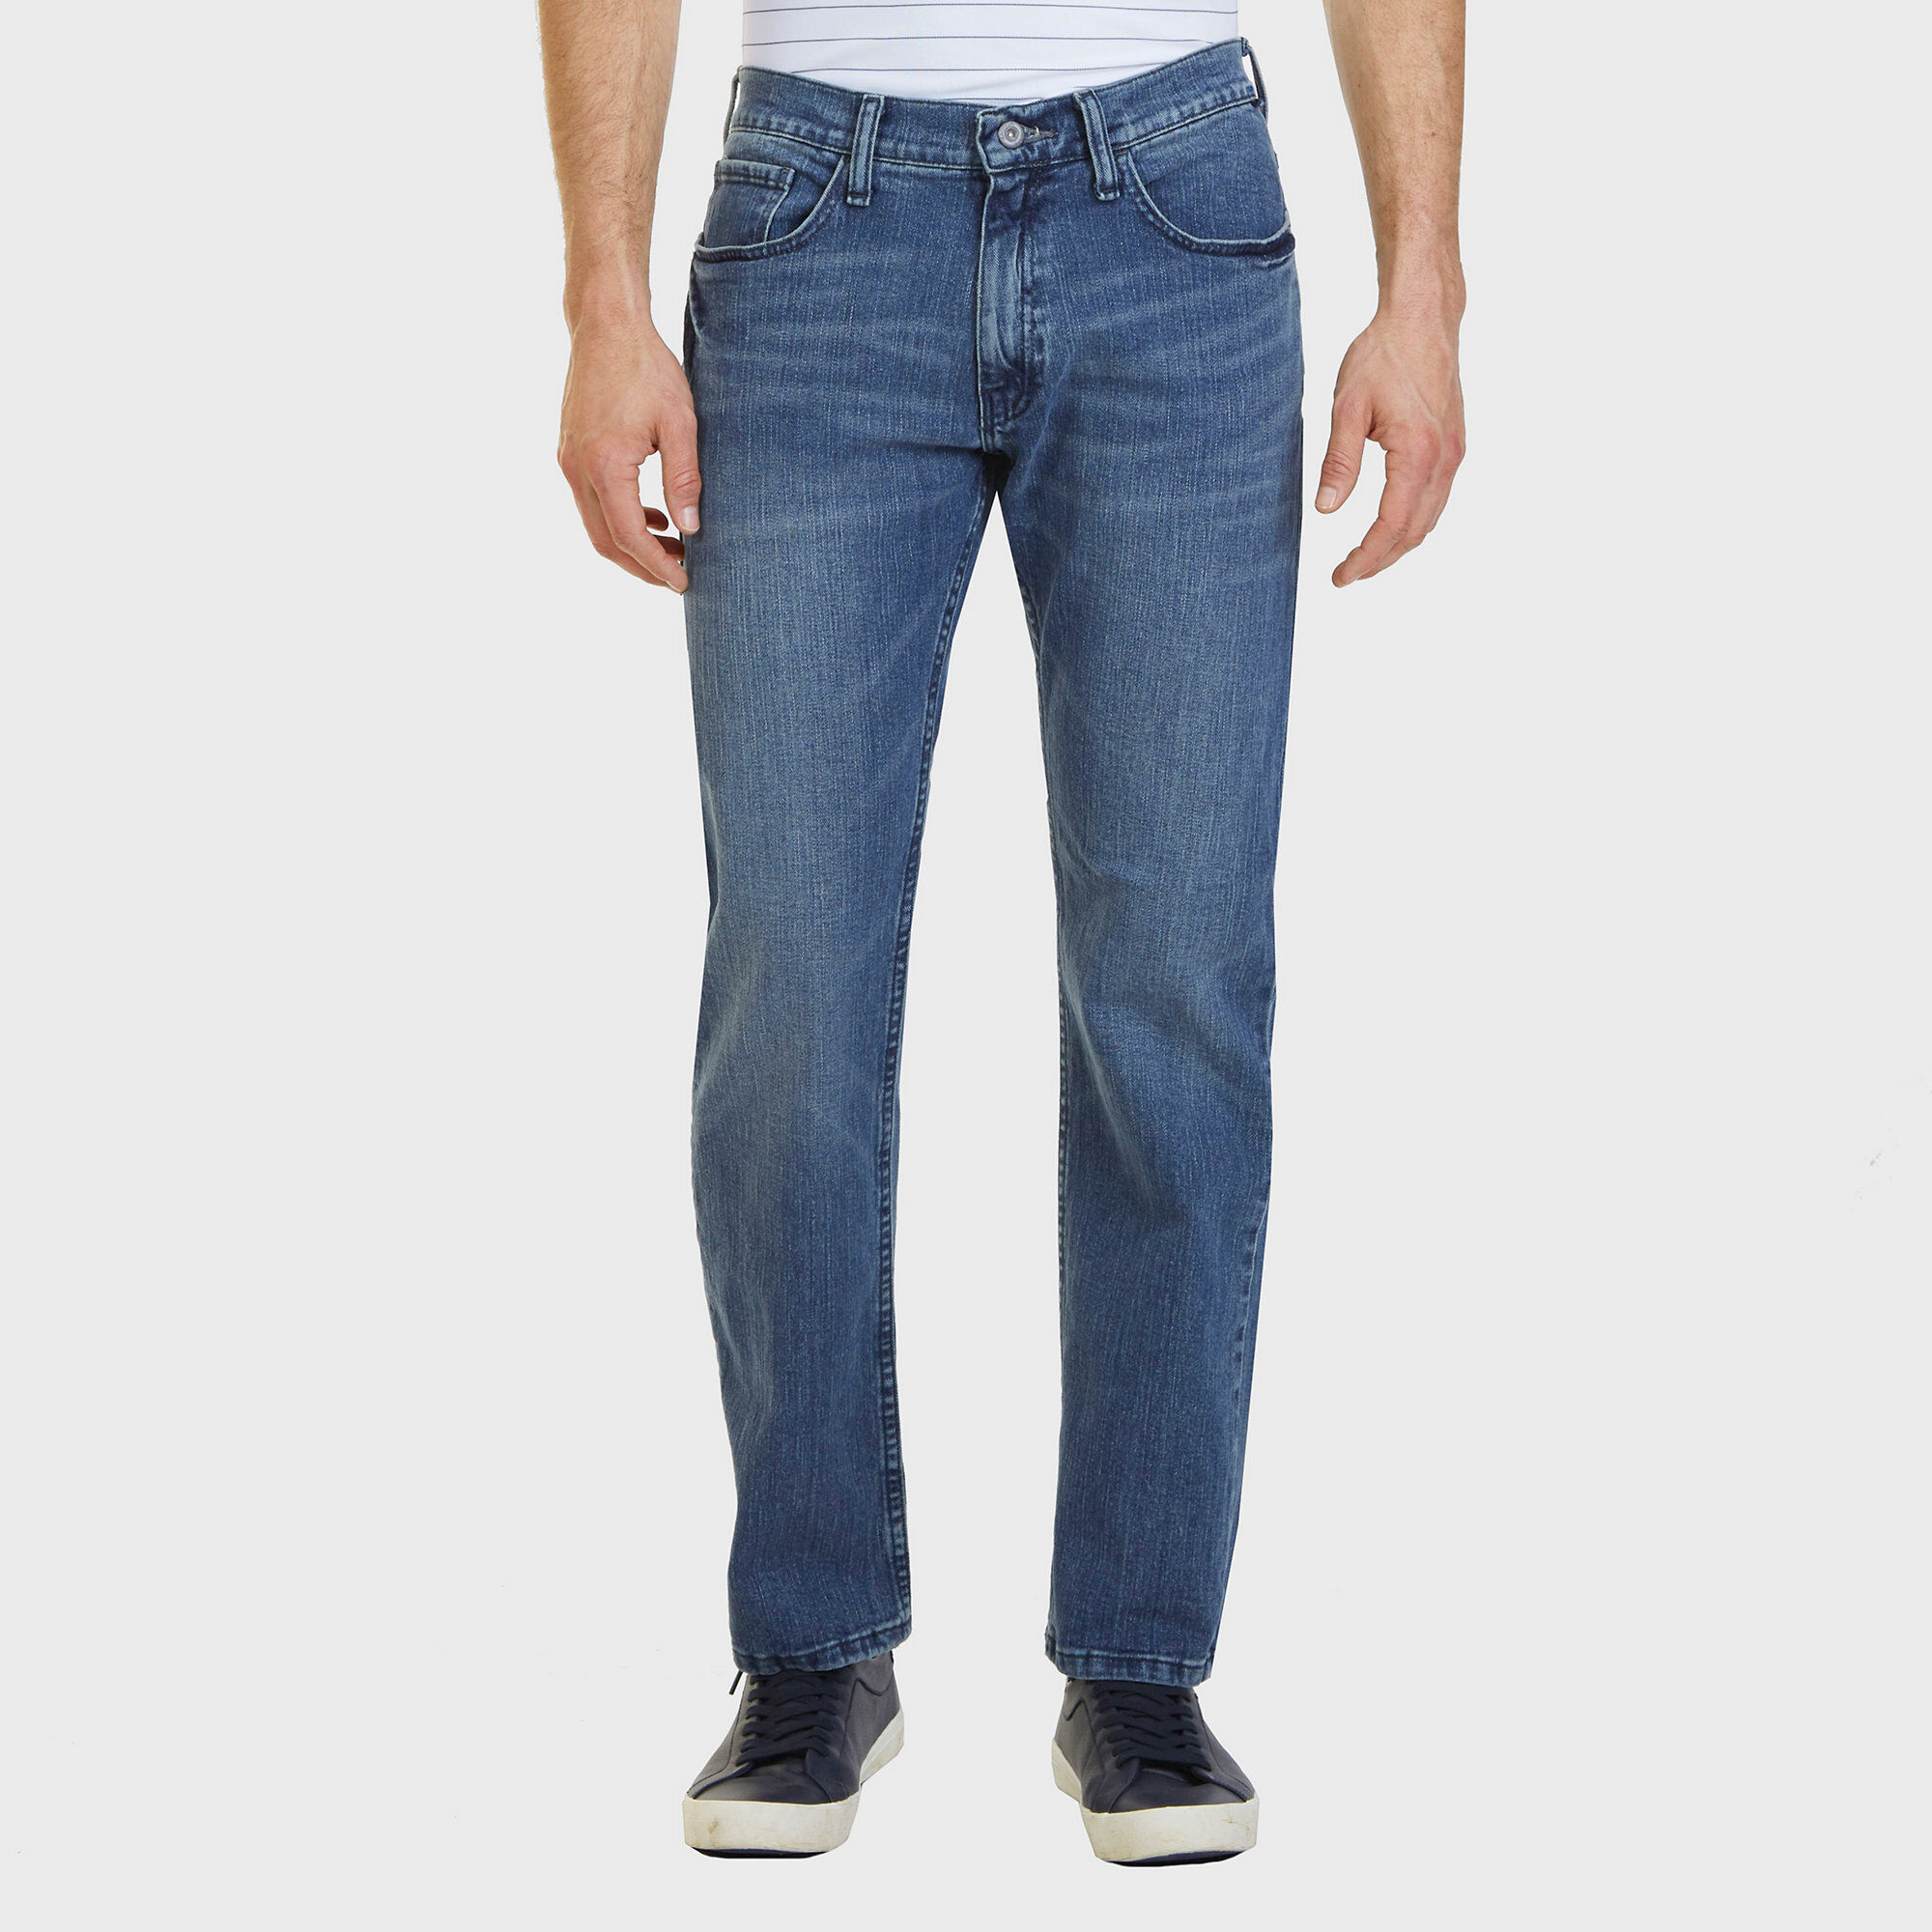 Nautica Mens 5-Pocket Stretch Jeans With Tapered Leg